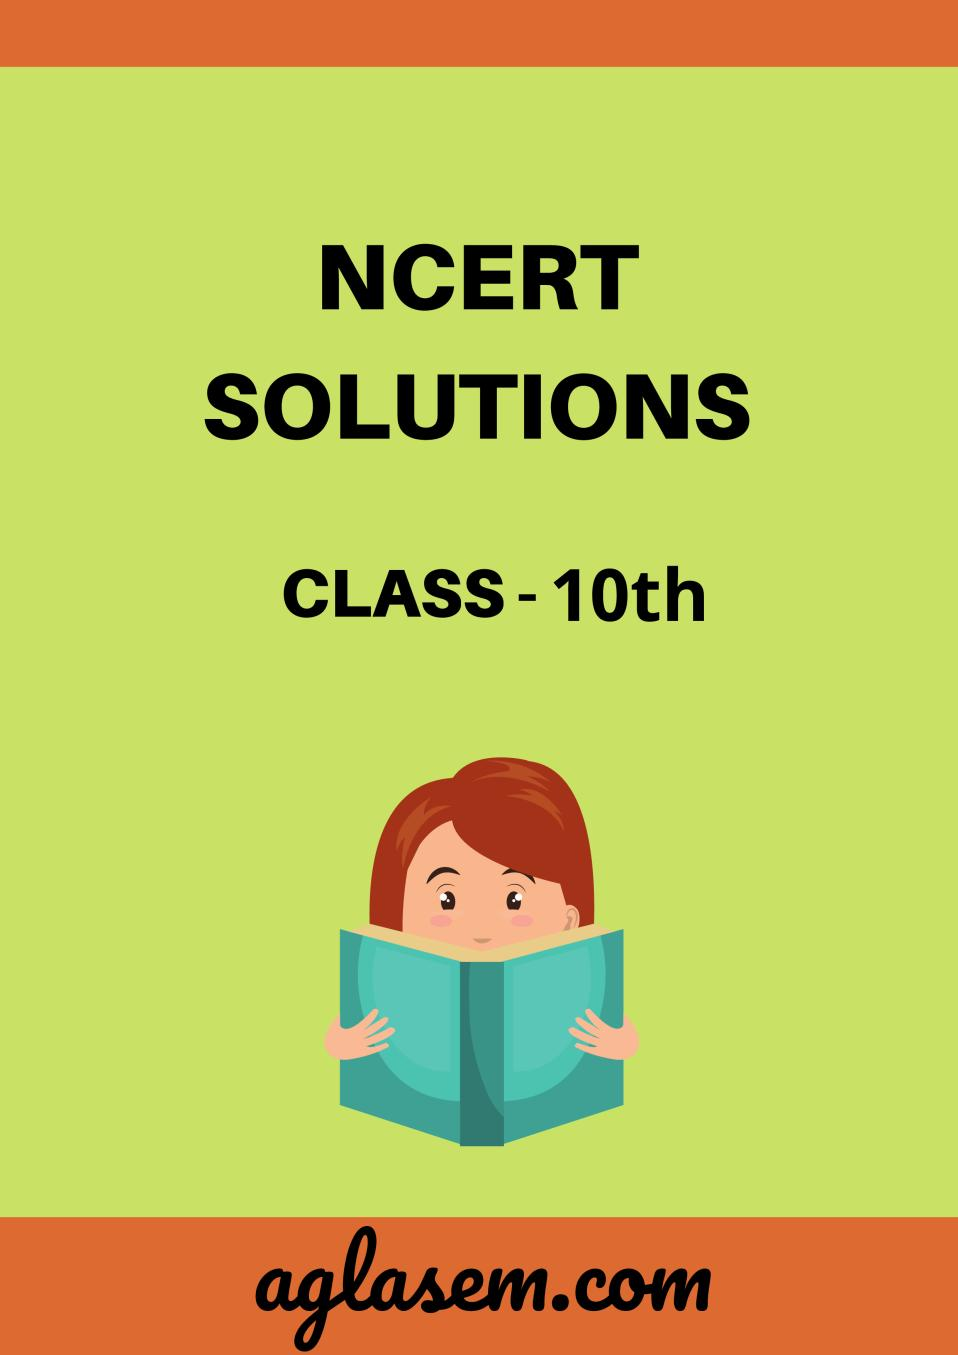 NCERT Solutions for Class 10 Maths Chapter 14 Statistics - Page 1